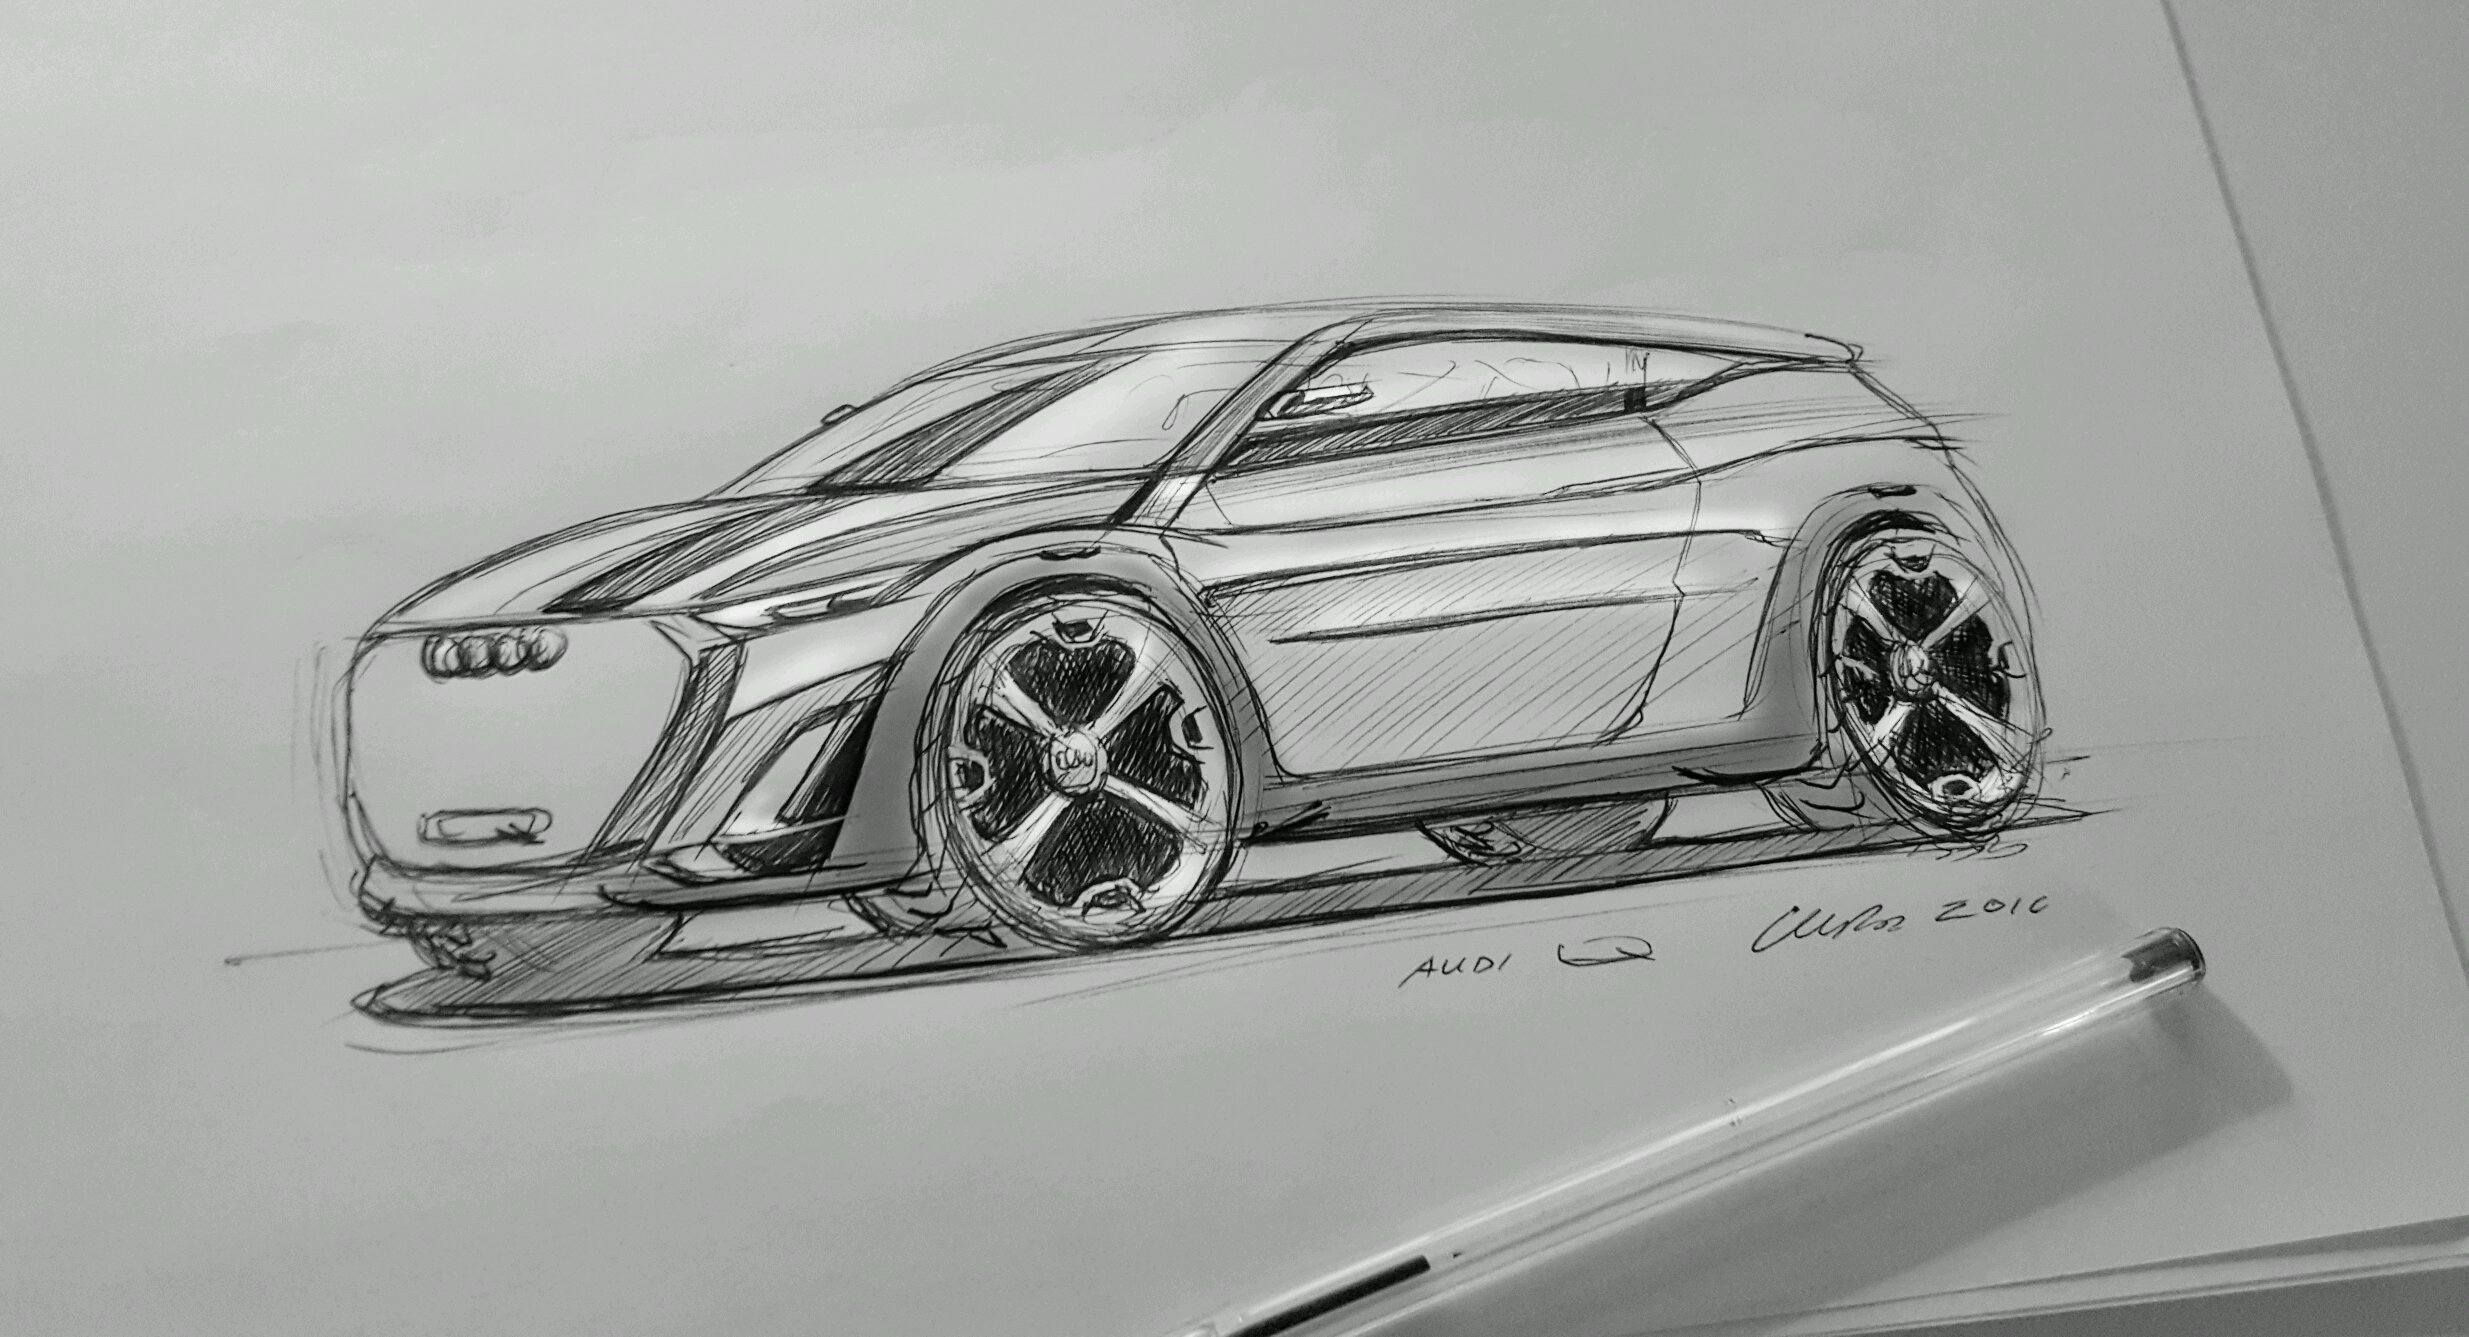 Audi Q Concept 2 Check Out My Car Sketching Tutorial If You Want